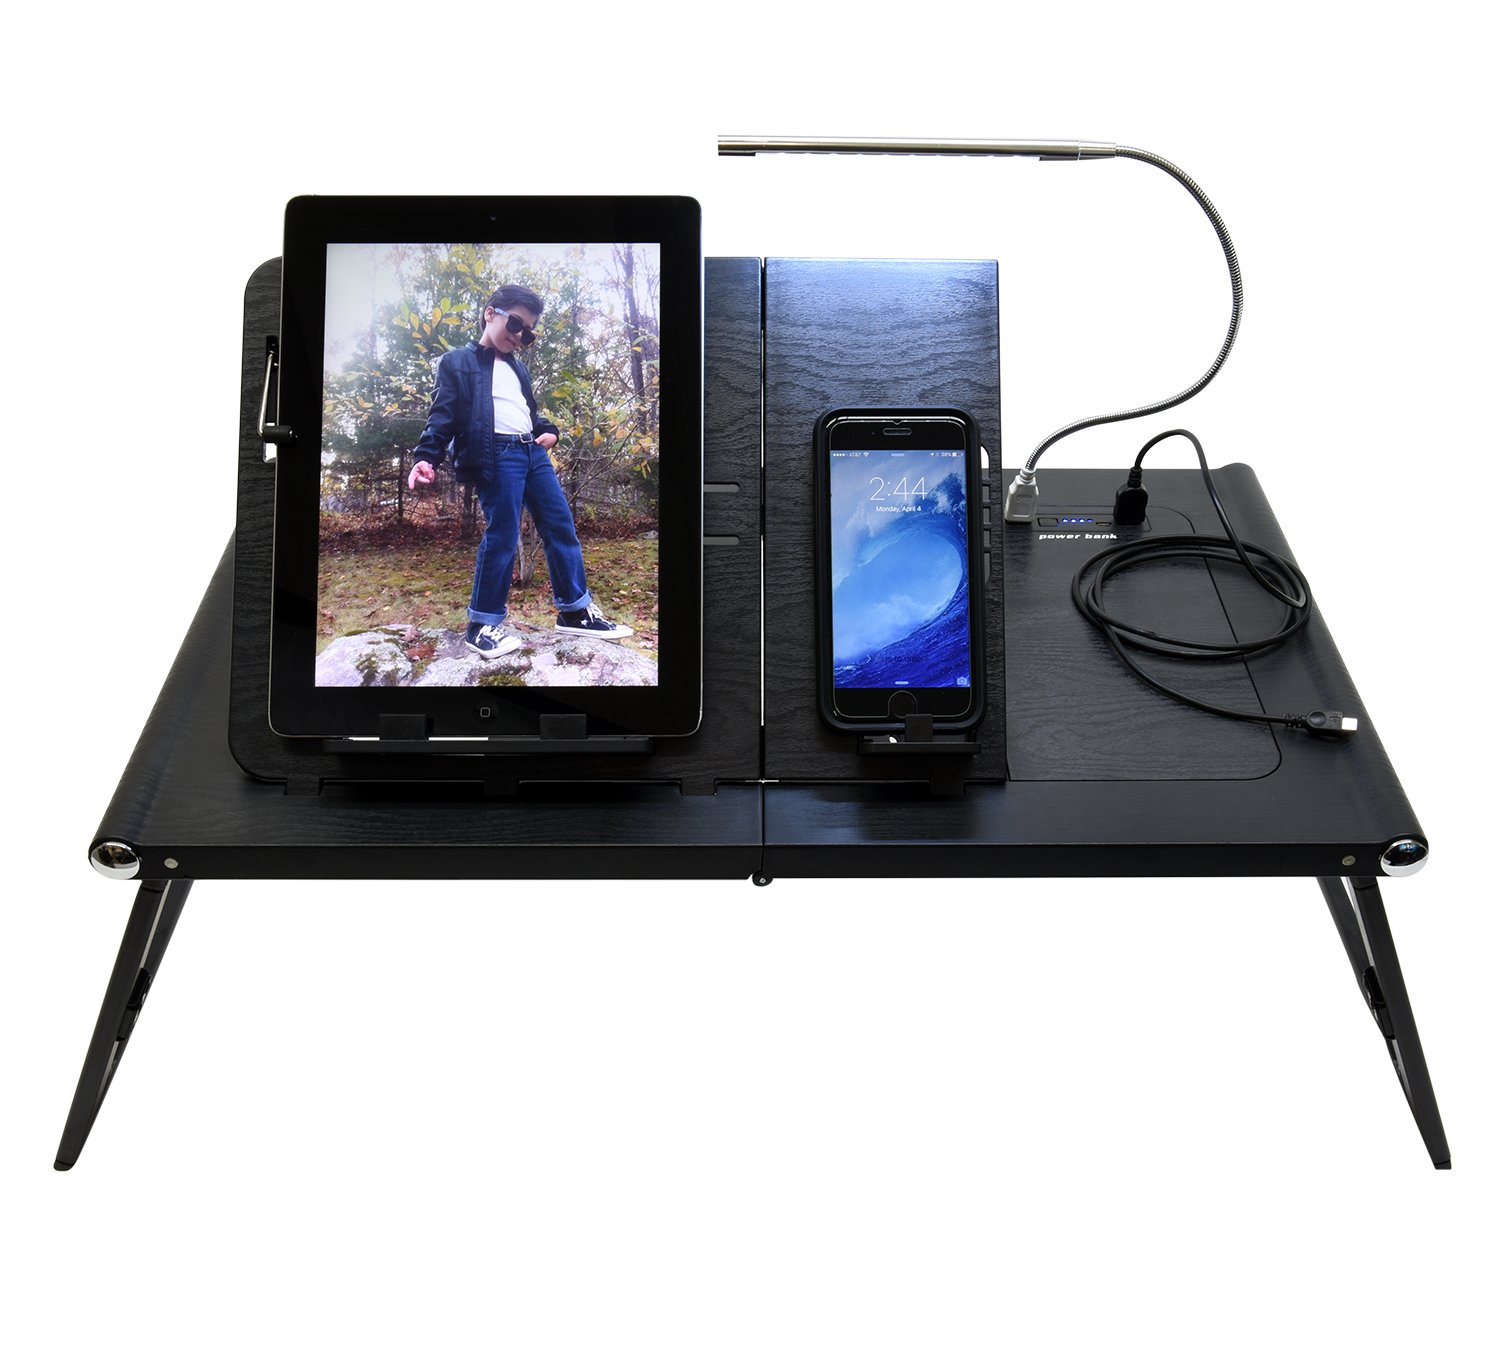 Ivation Adjustable Table, Stand, Standing Desk for Laptop & Tablets Built-In Power Bank 13,200 mAh, Two USB Ports & Reading Lamp included